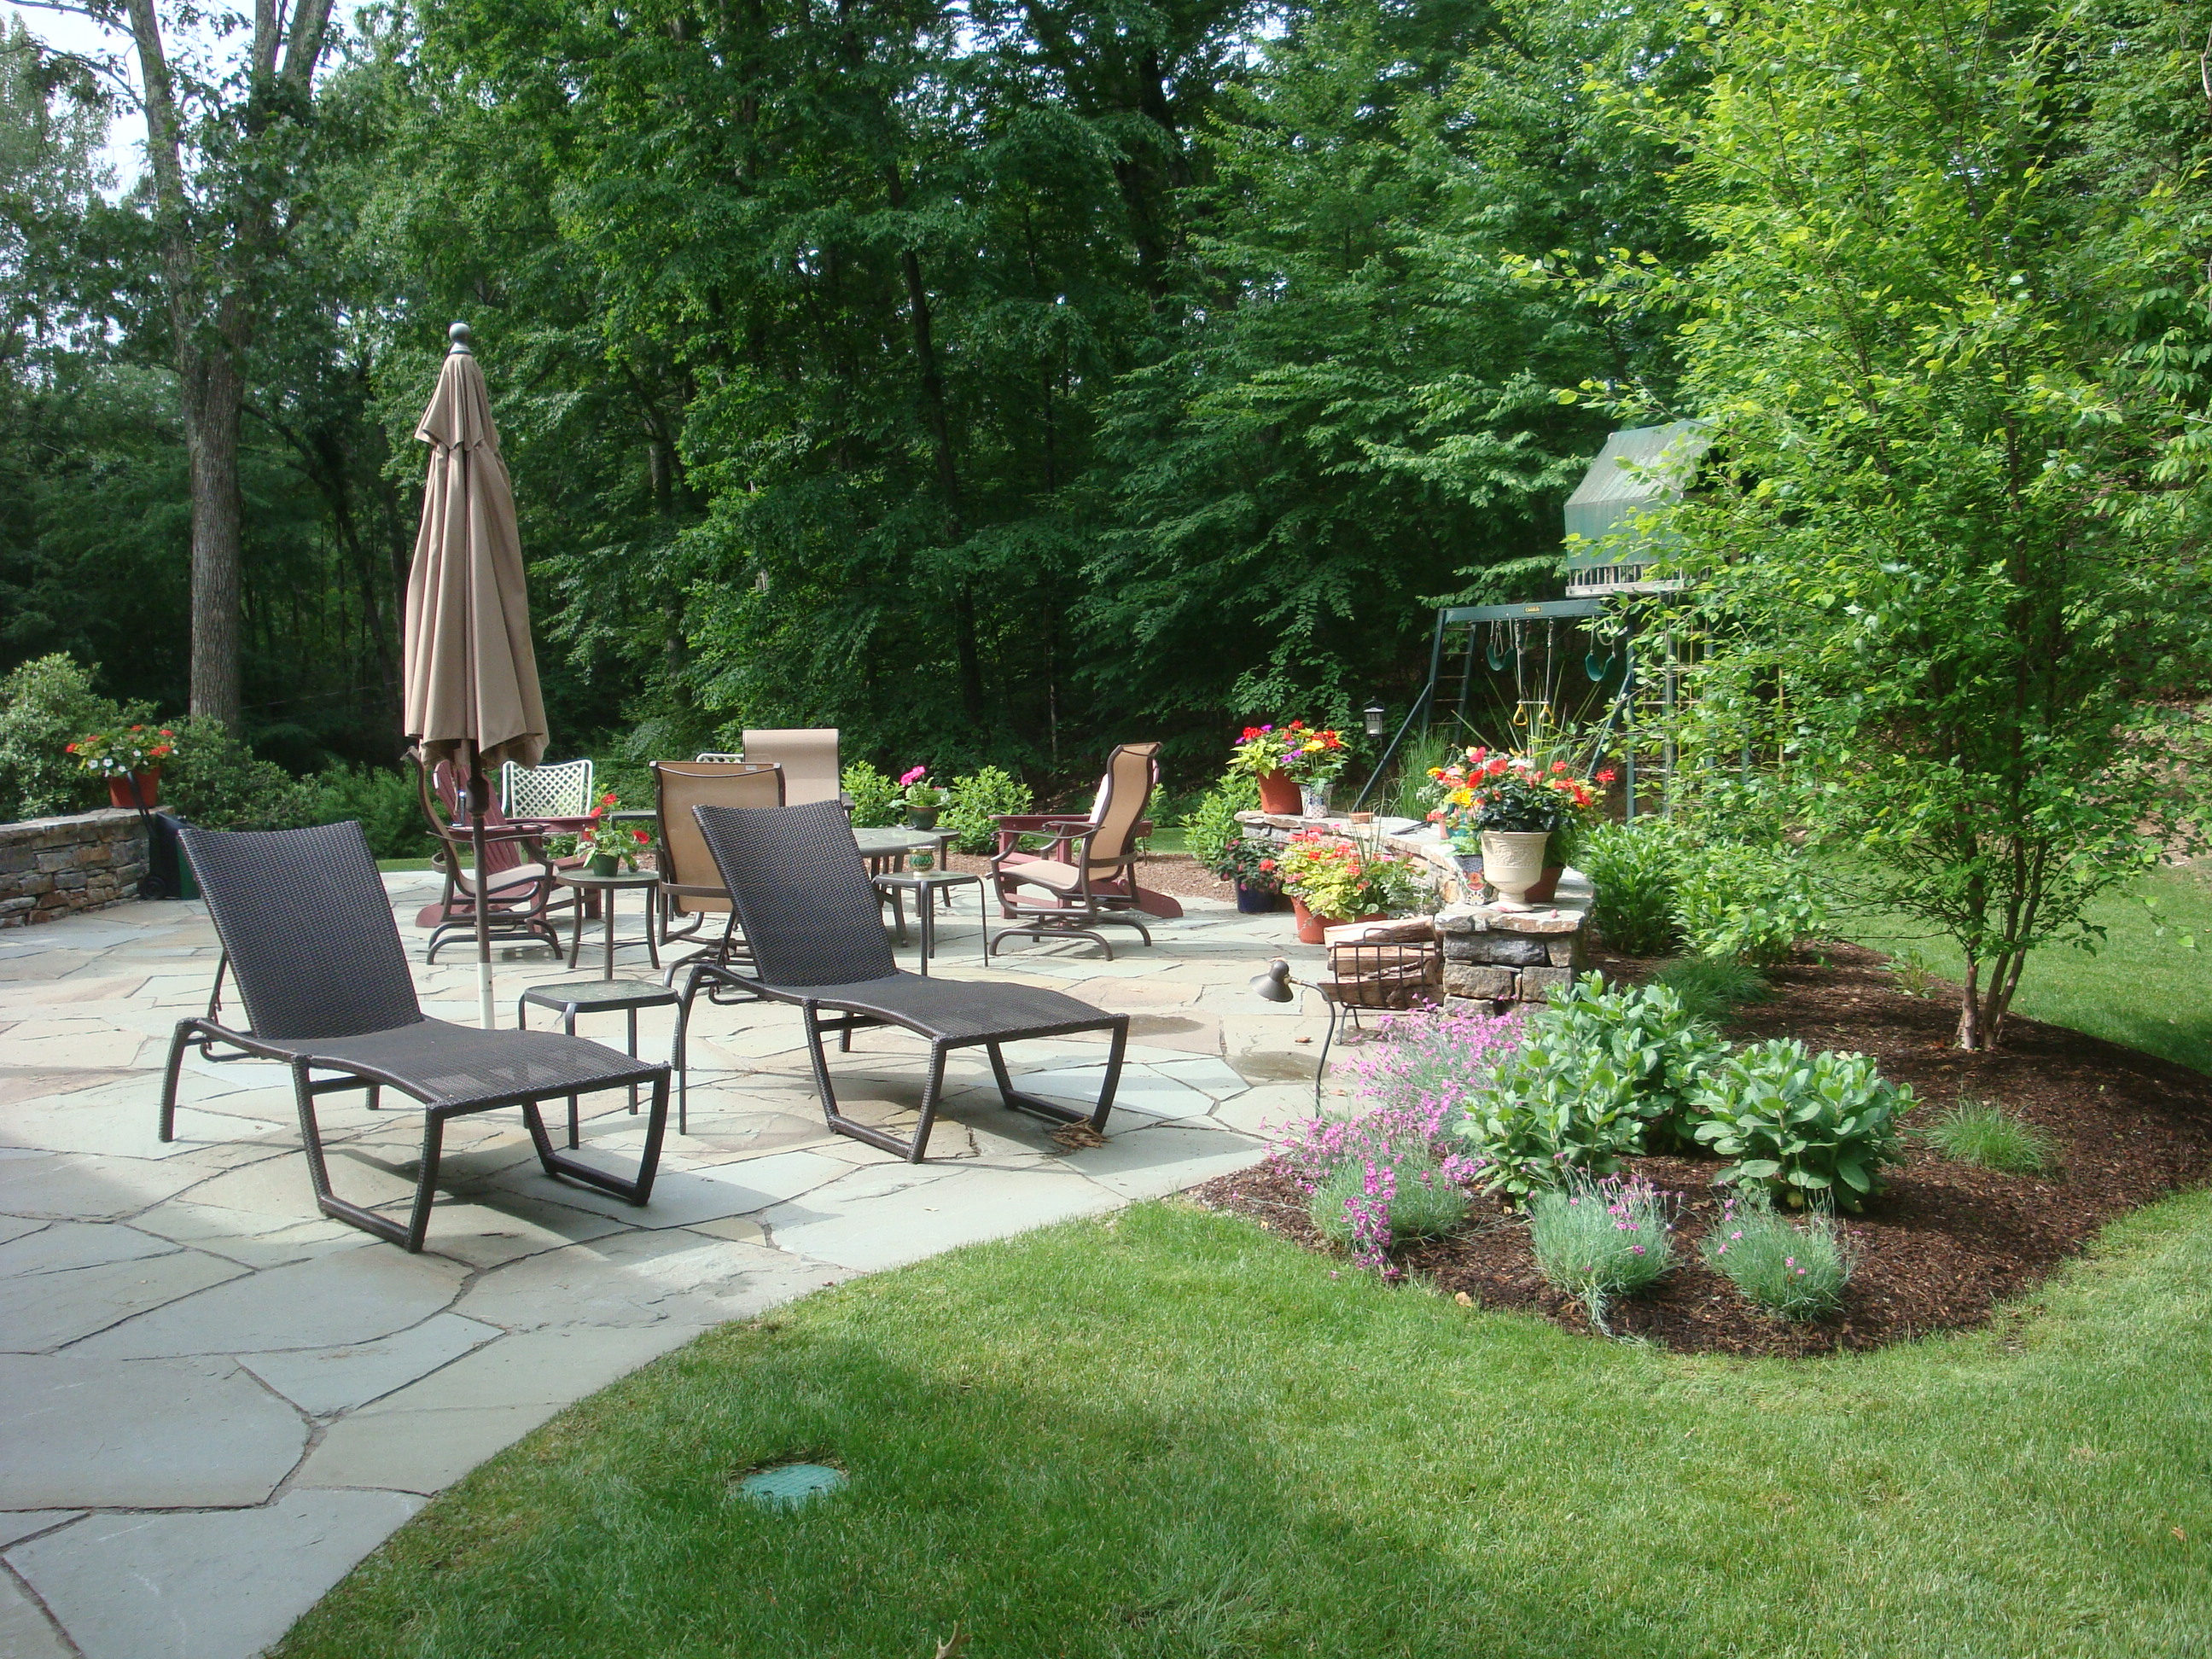 Patios garden designers roundtable for Outside garden design